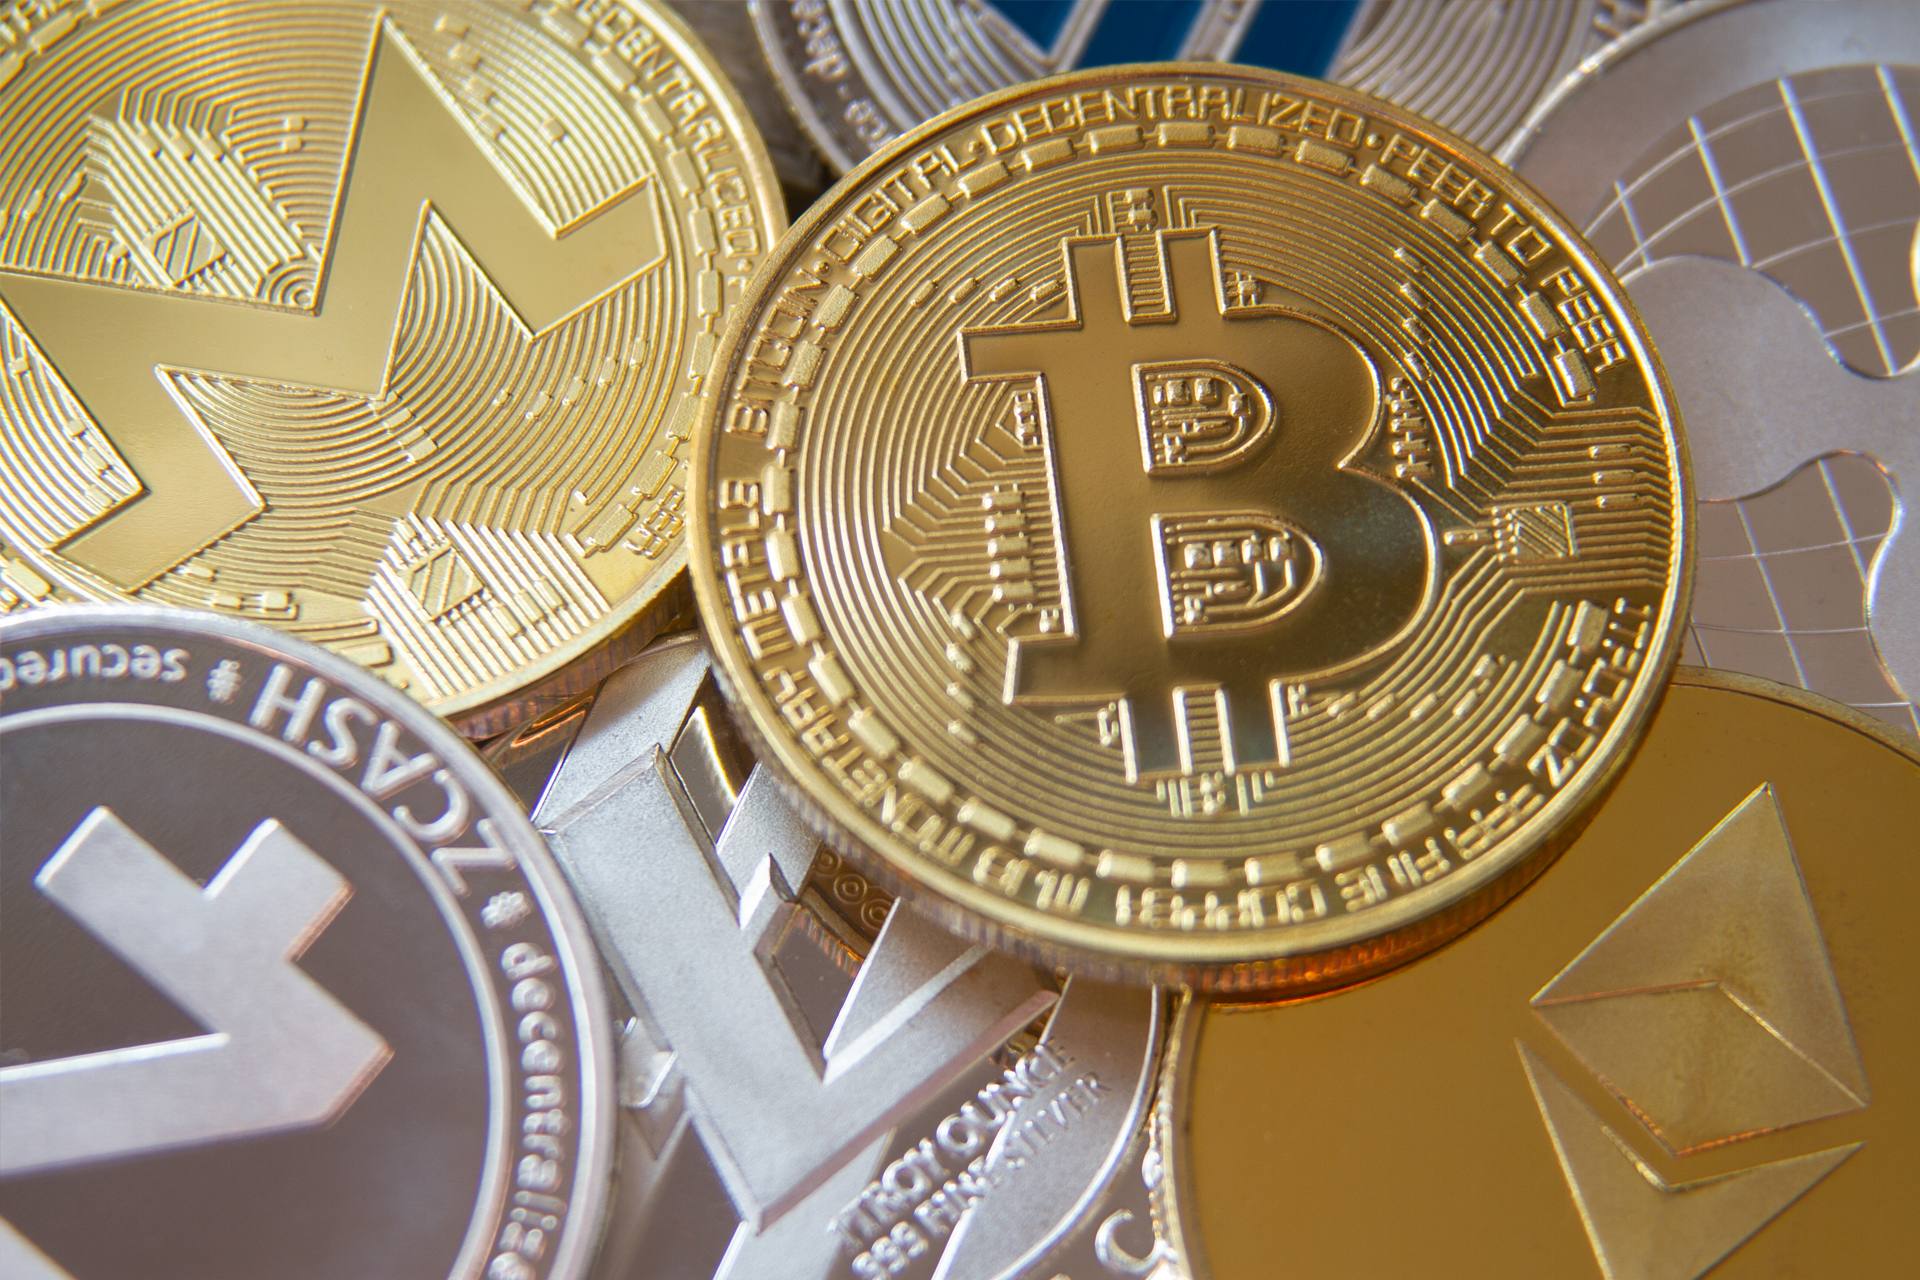 Pile ofcryptocurrency coinsincluding Bitcoin, Monero, ZCash, Ethereum, Litecoin, Ripple, and Dash. (Photo: QuoteInspector/Flickr)